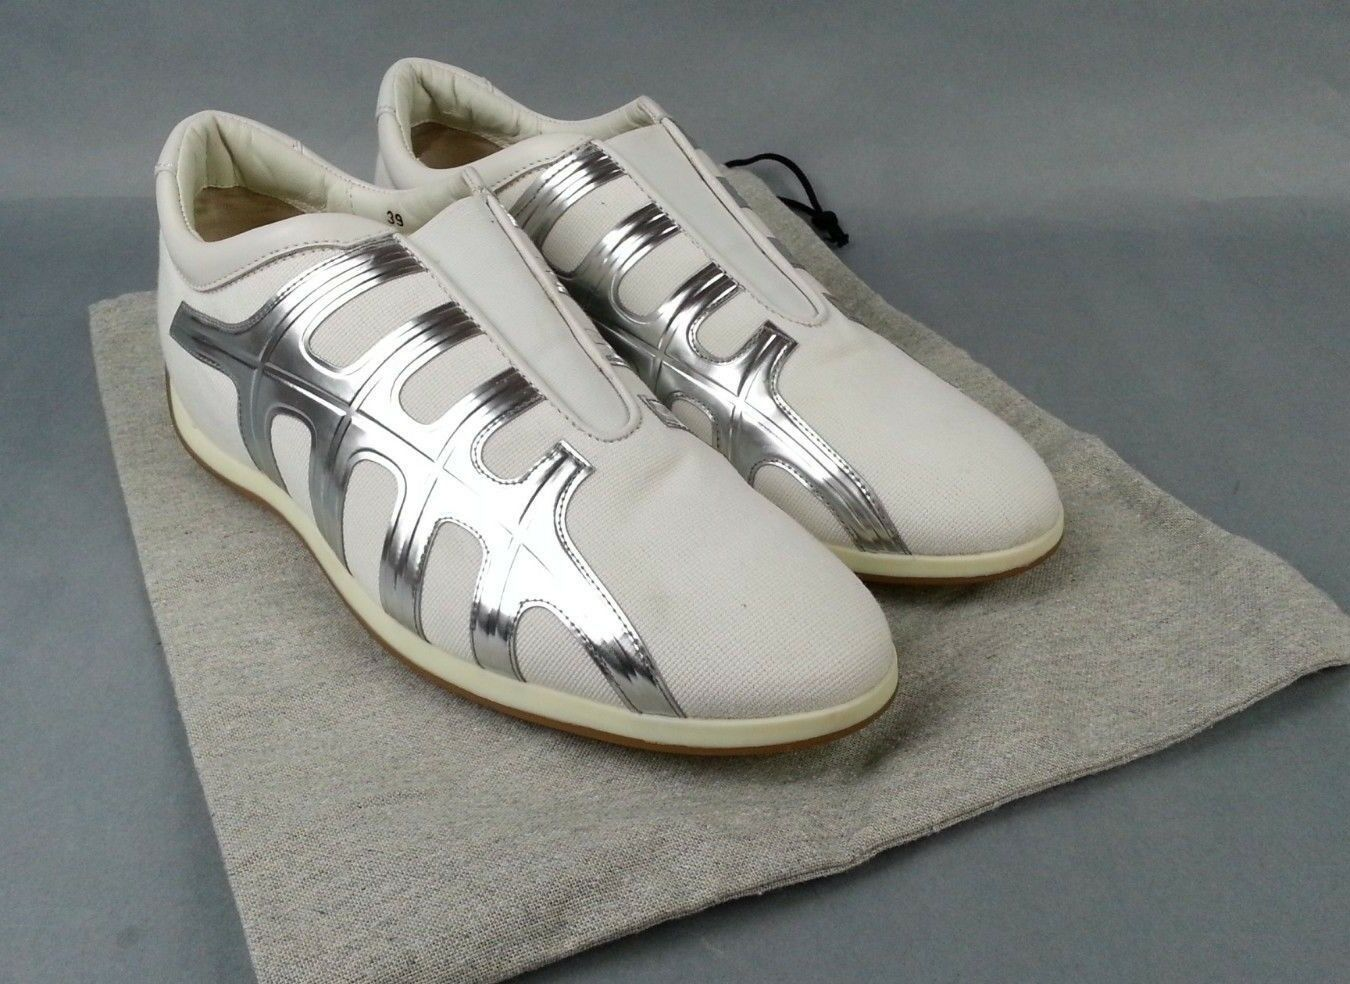 Hogan White Metallic Womens shoes Size 8.5-9 US   39 EU